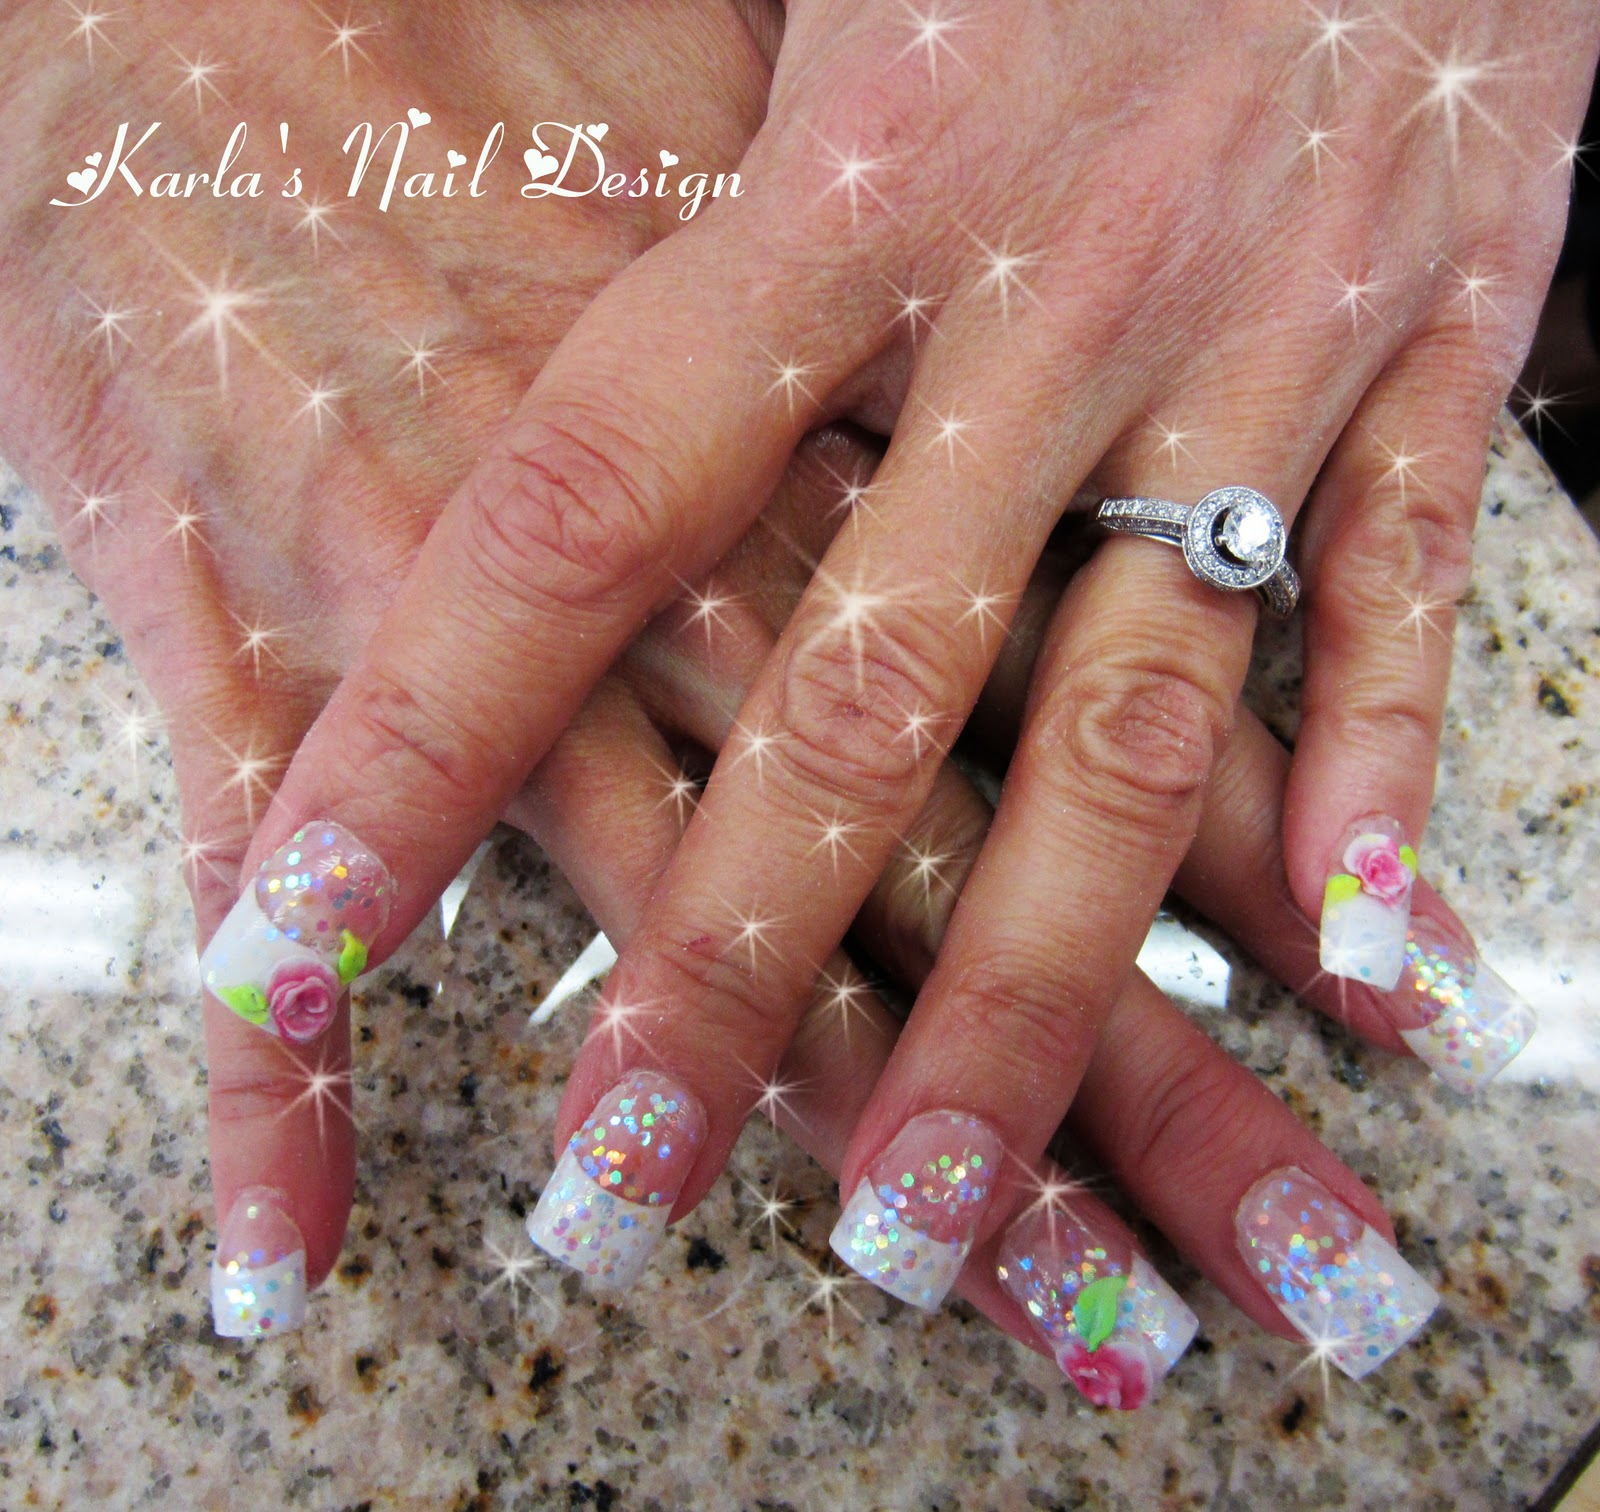 Acrylic White Tip Nail Designs - Home design